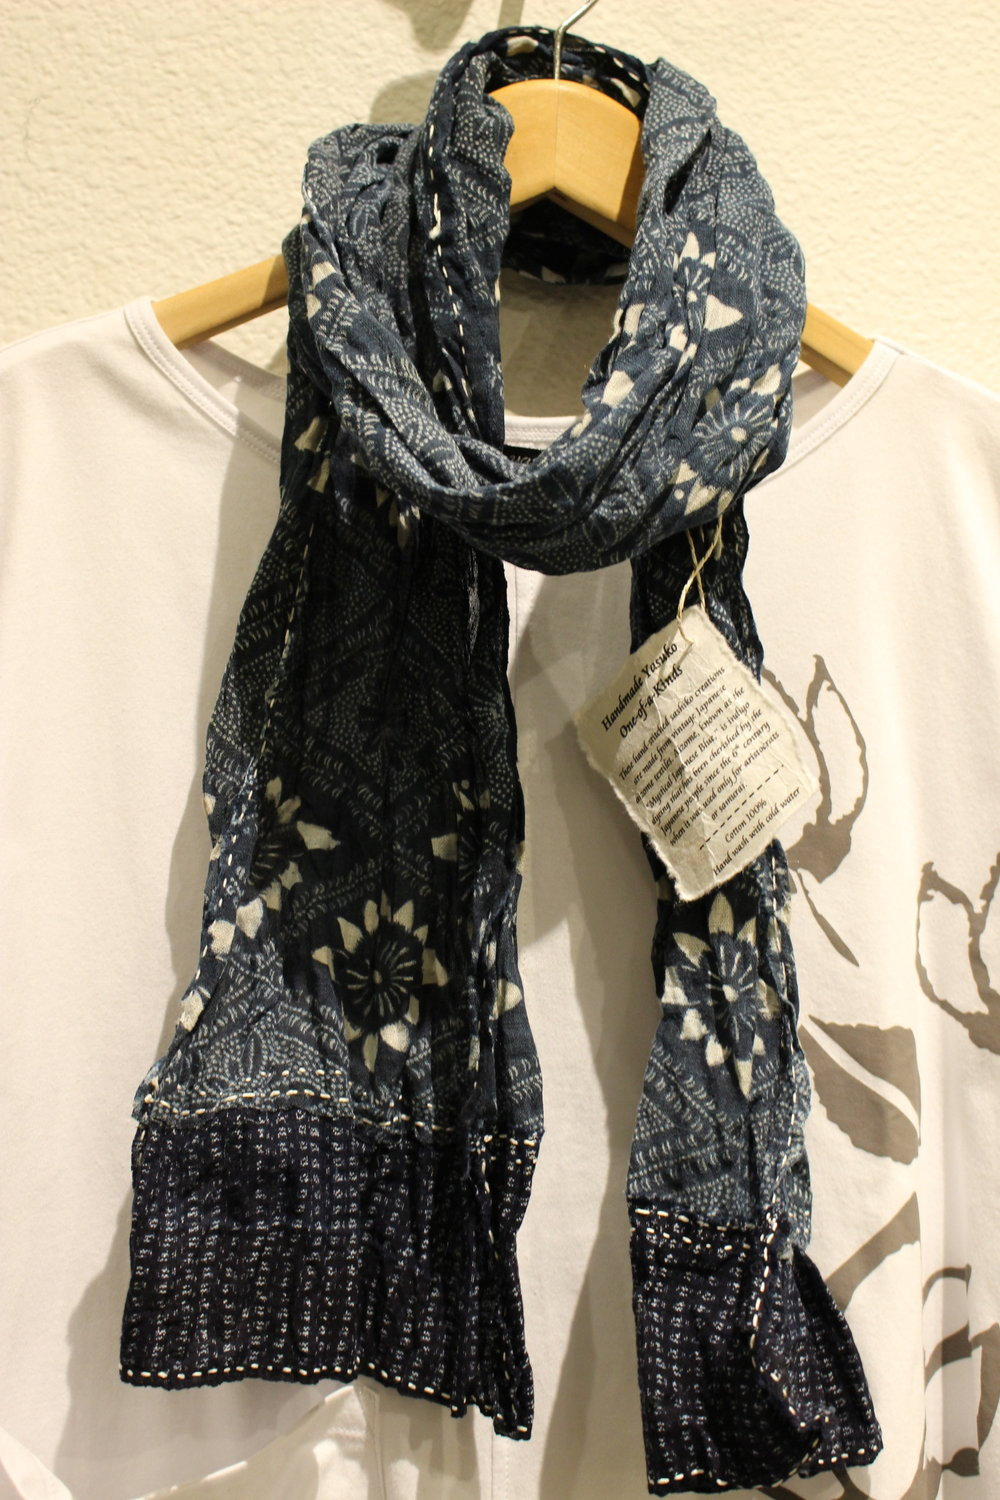 Aizome Cotton Scarf - Vintage aizome (indigo) cotton; katazome and kasuri with sashiko stitch